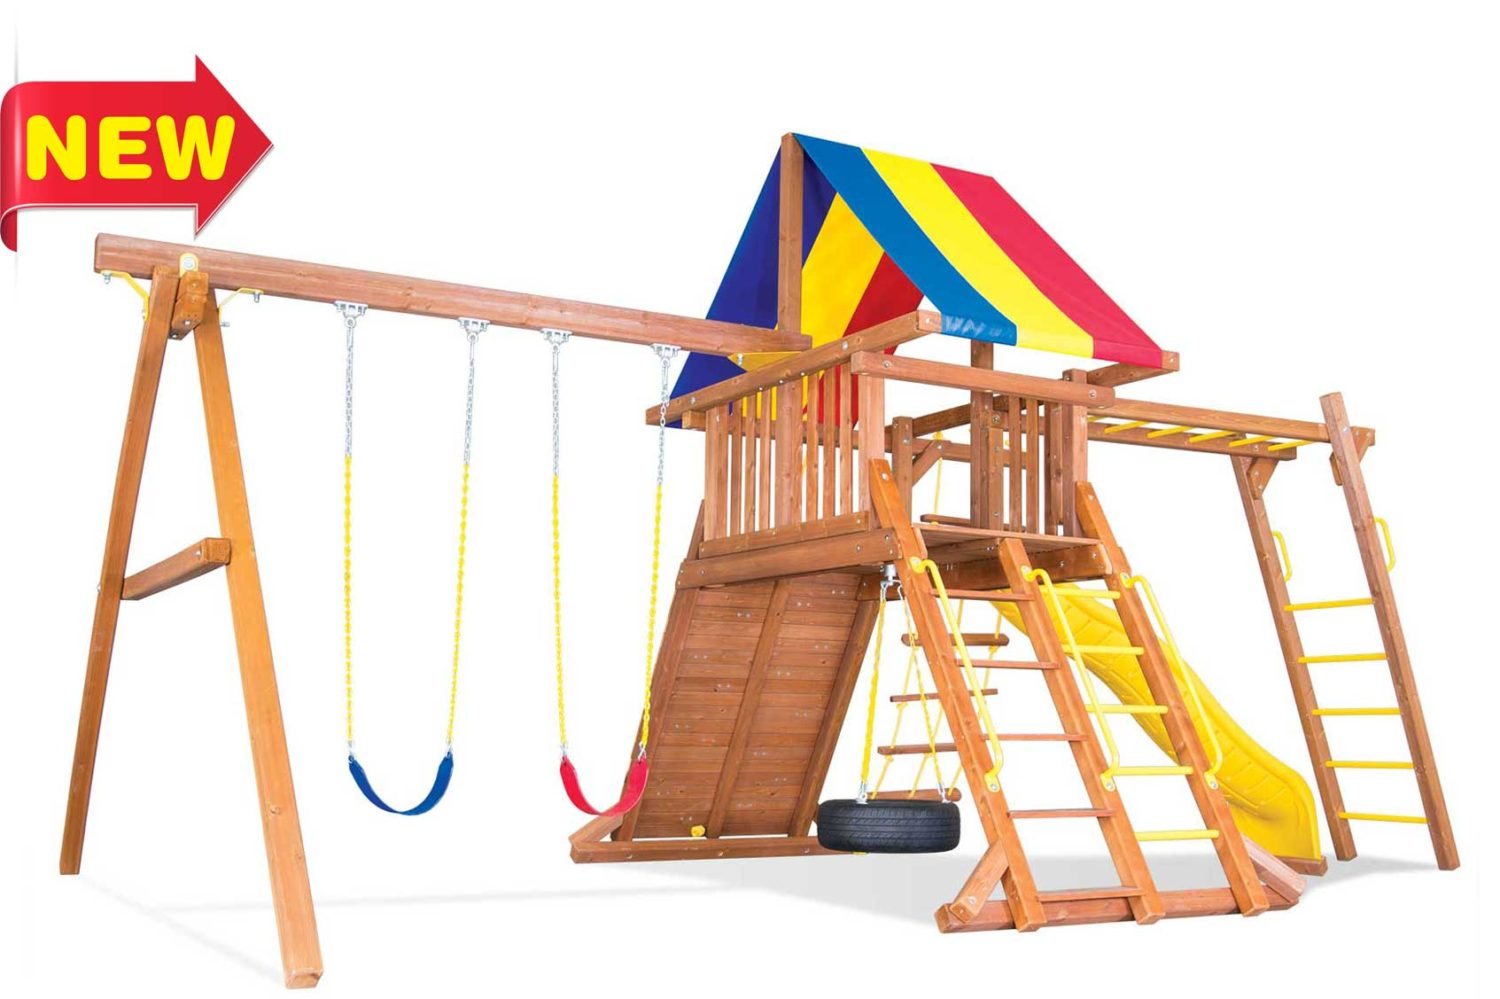 Circus Turbo Base Castle Pkg III with 4 by 4 Monkey Bars Wooden Swing Set